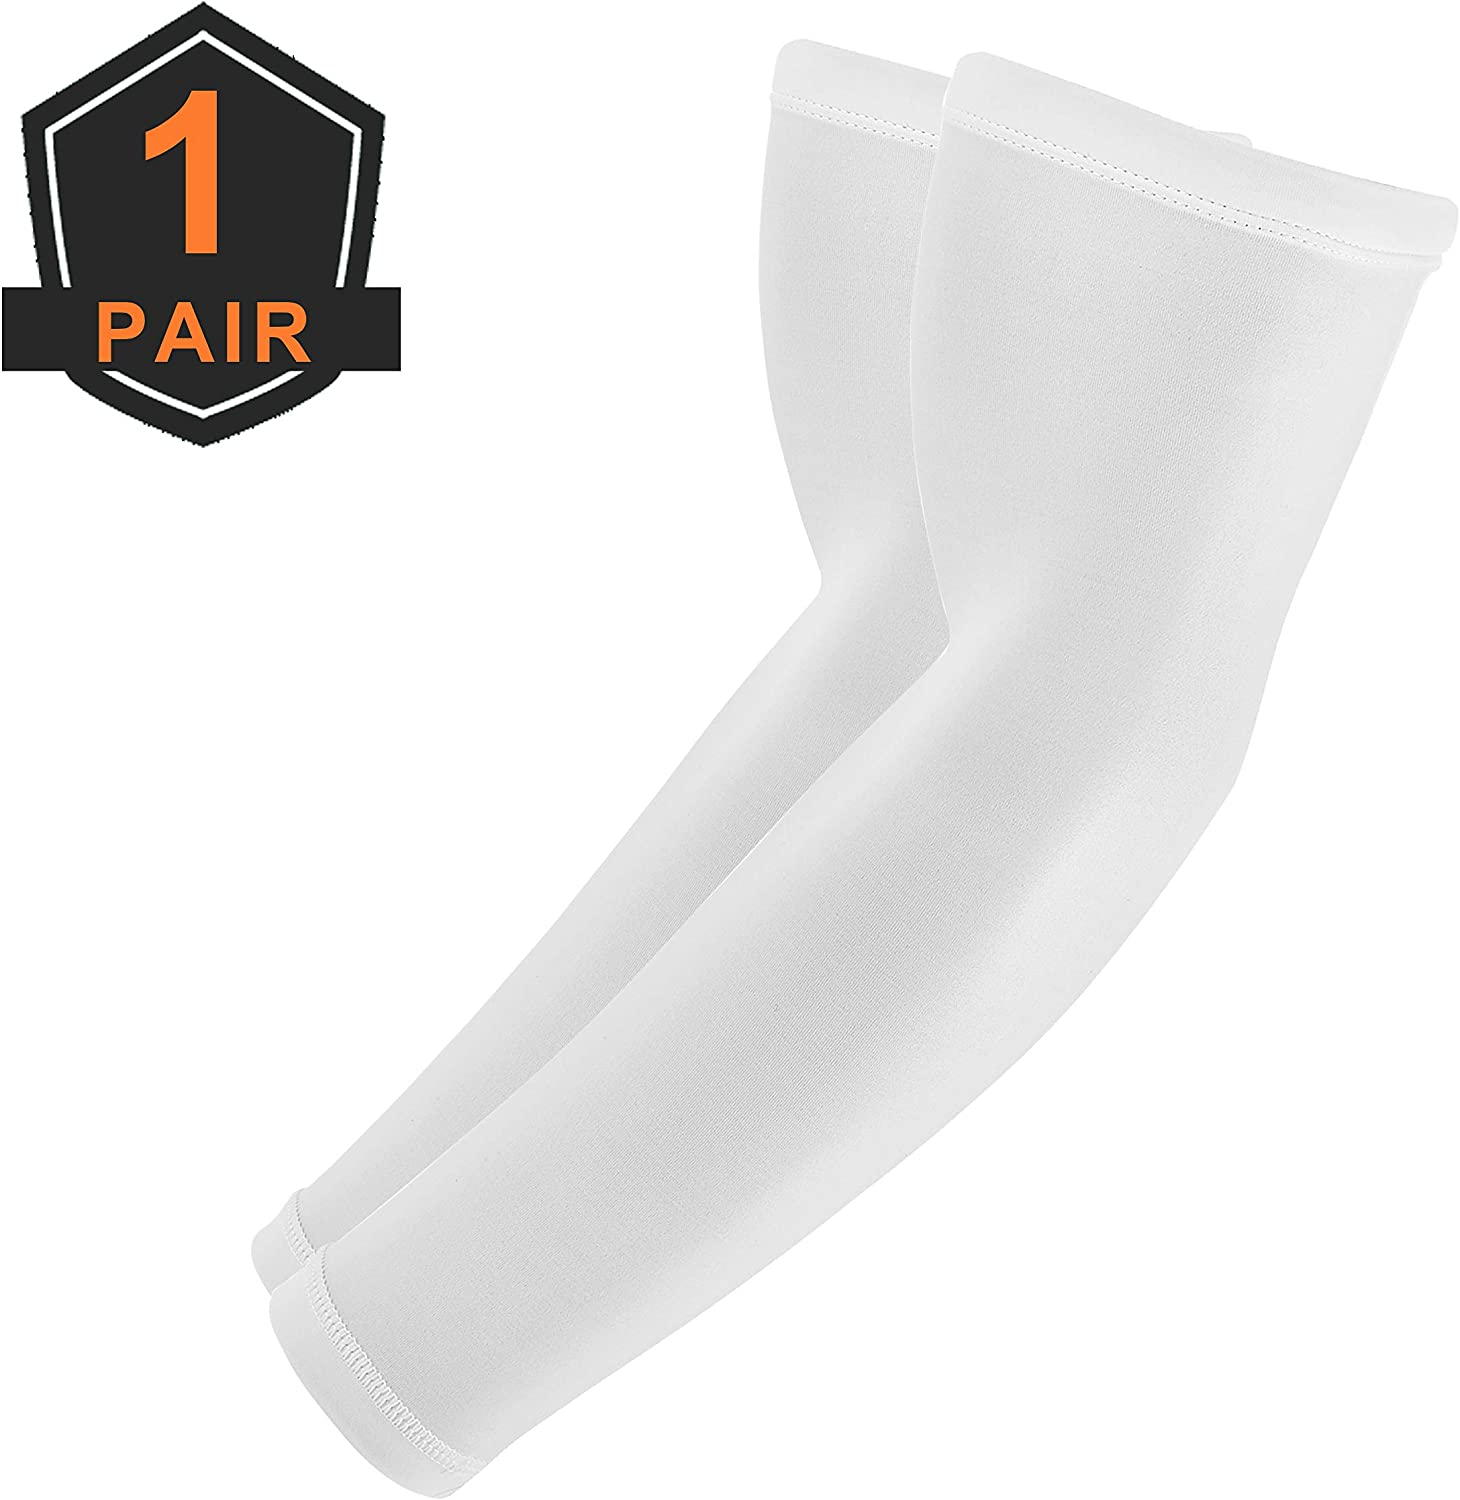 skybulls Compression Arm Sleeves, UPF50 UV Sun Sleeves Non-Slip Tattoo Arm Cover for Basketball, Climbing, Golf, Biking, Football, Running, Baseball & Other Outdoor Sports - Unisex